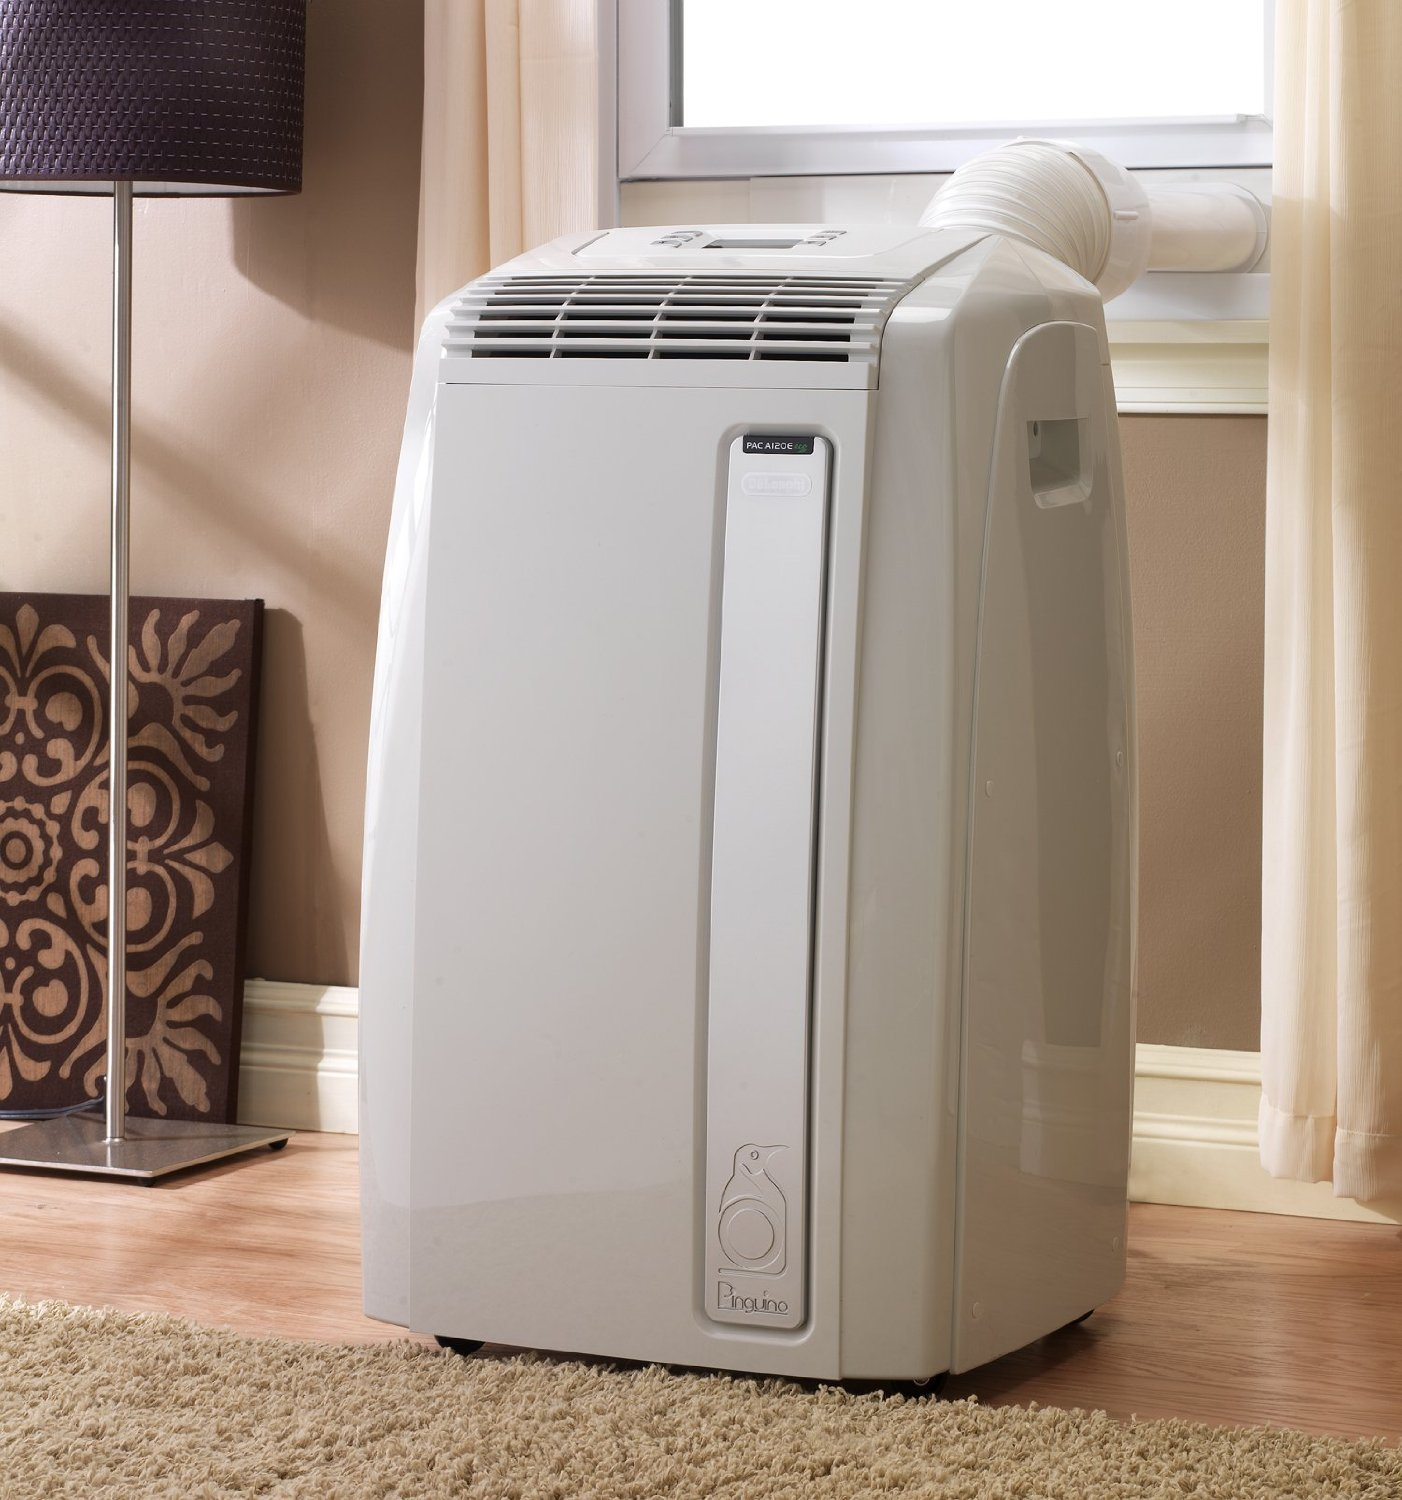 Air Conditioners: June 2015 on